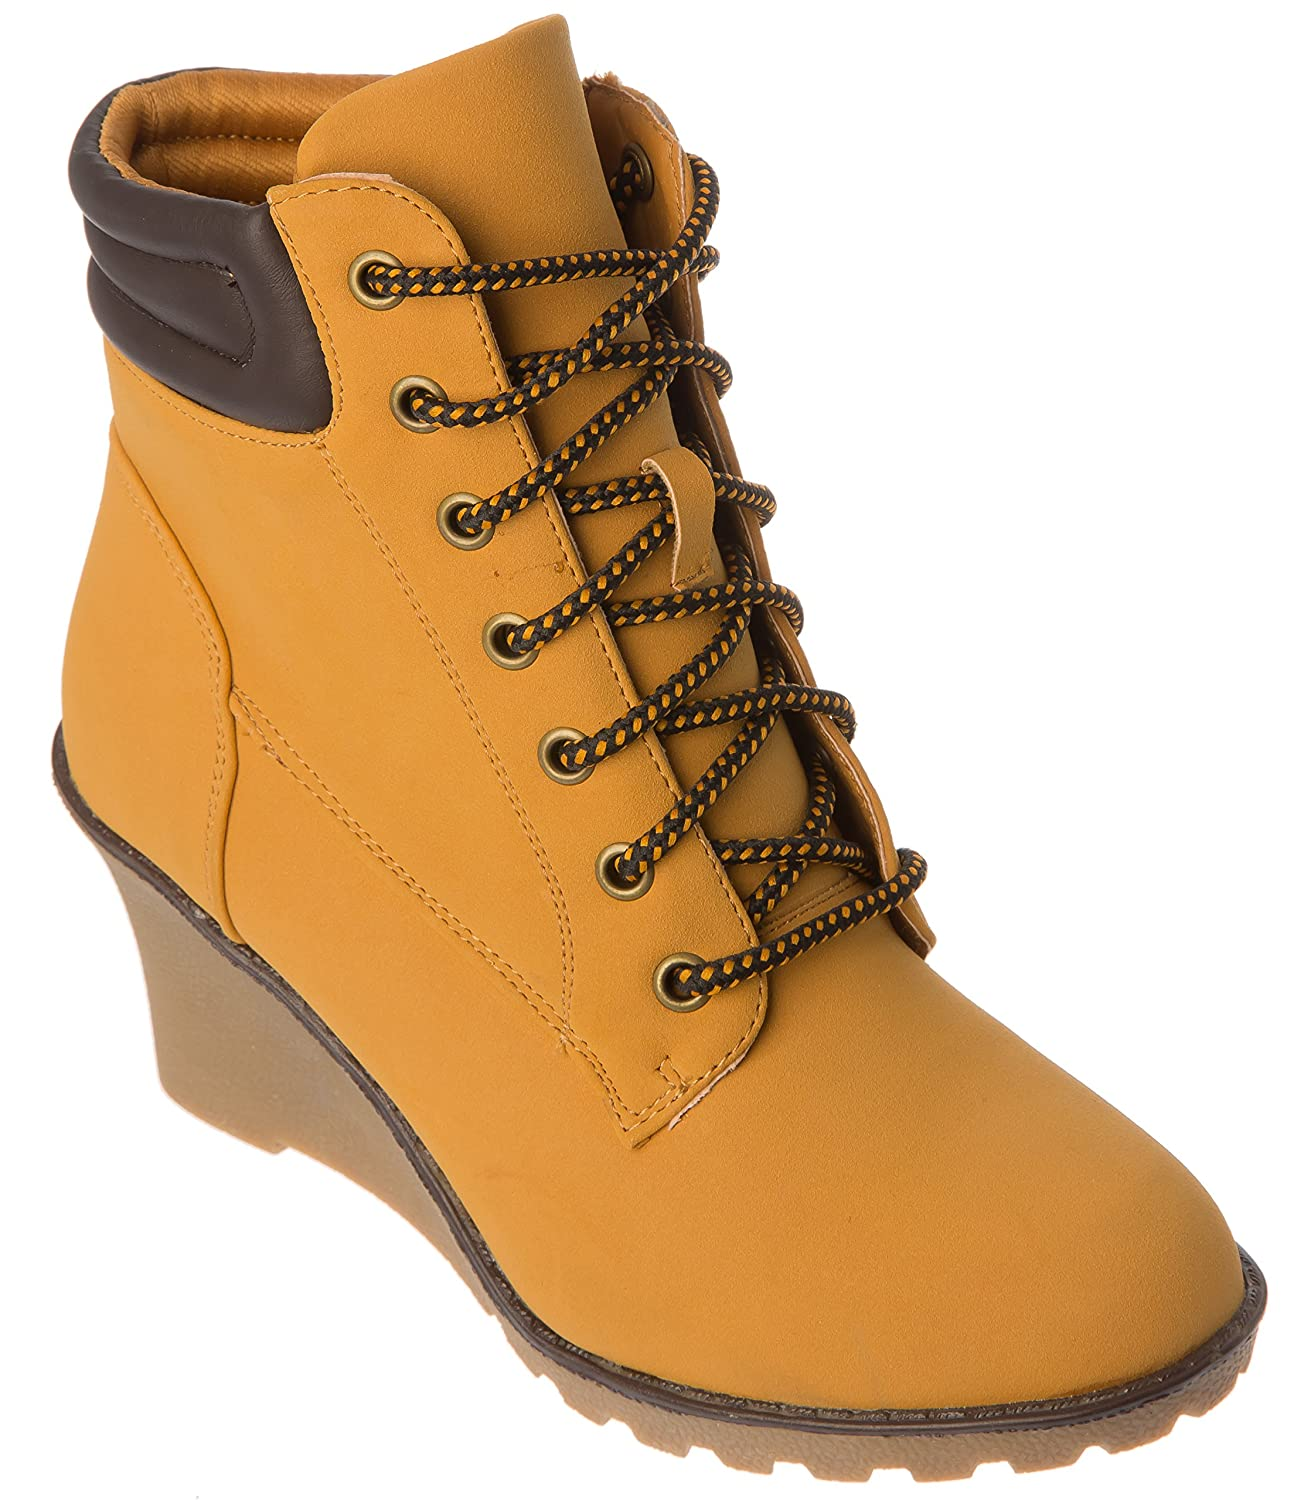 Womans Western Wedge Heel Boots Modern, Casual, Fashion Shoes